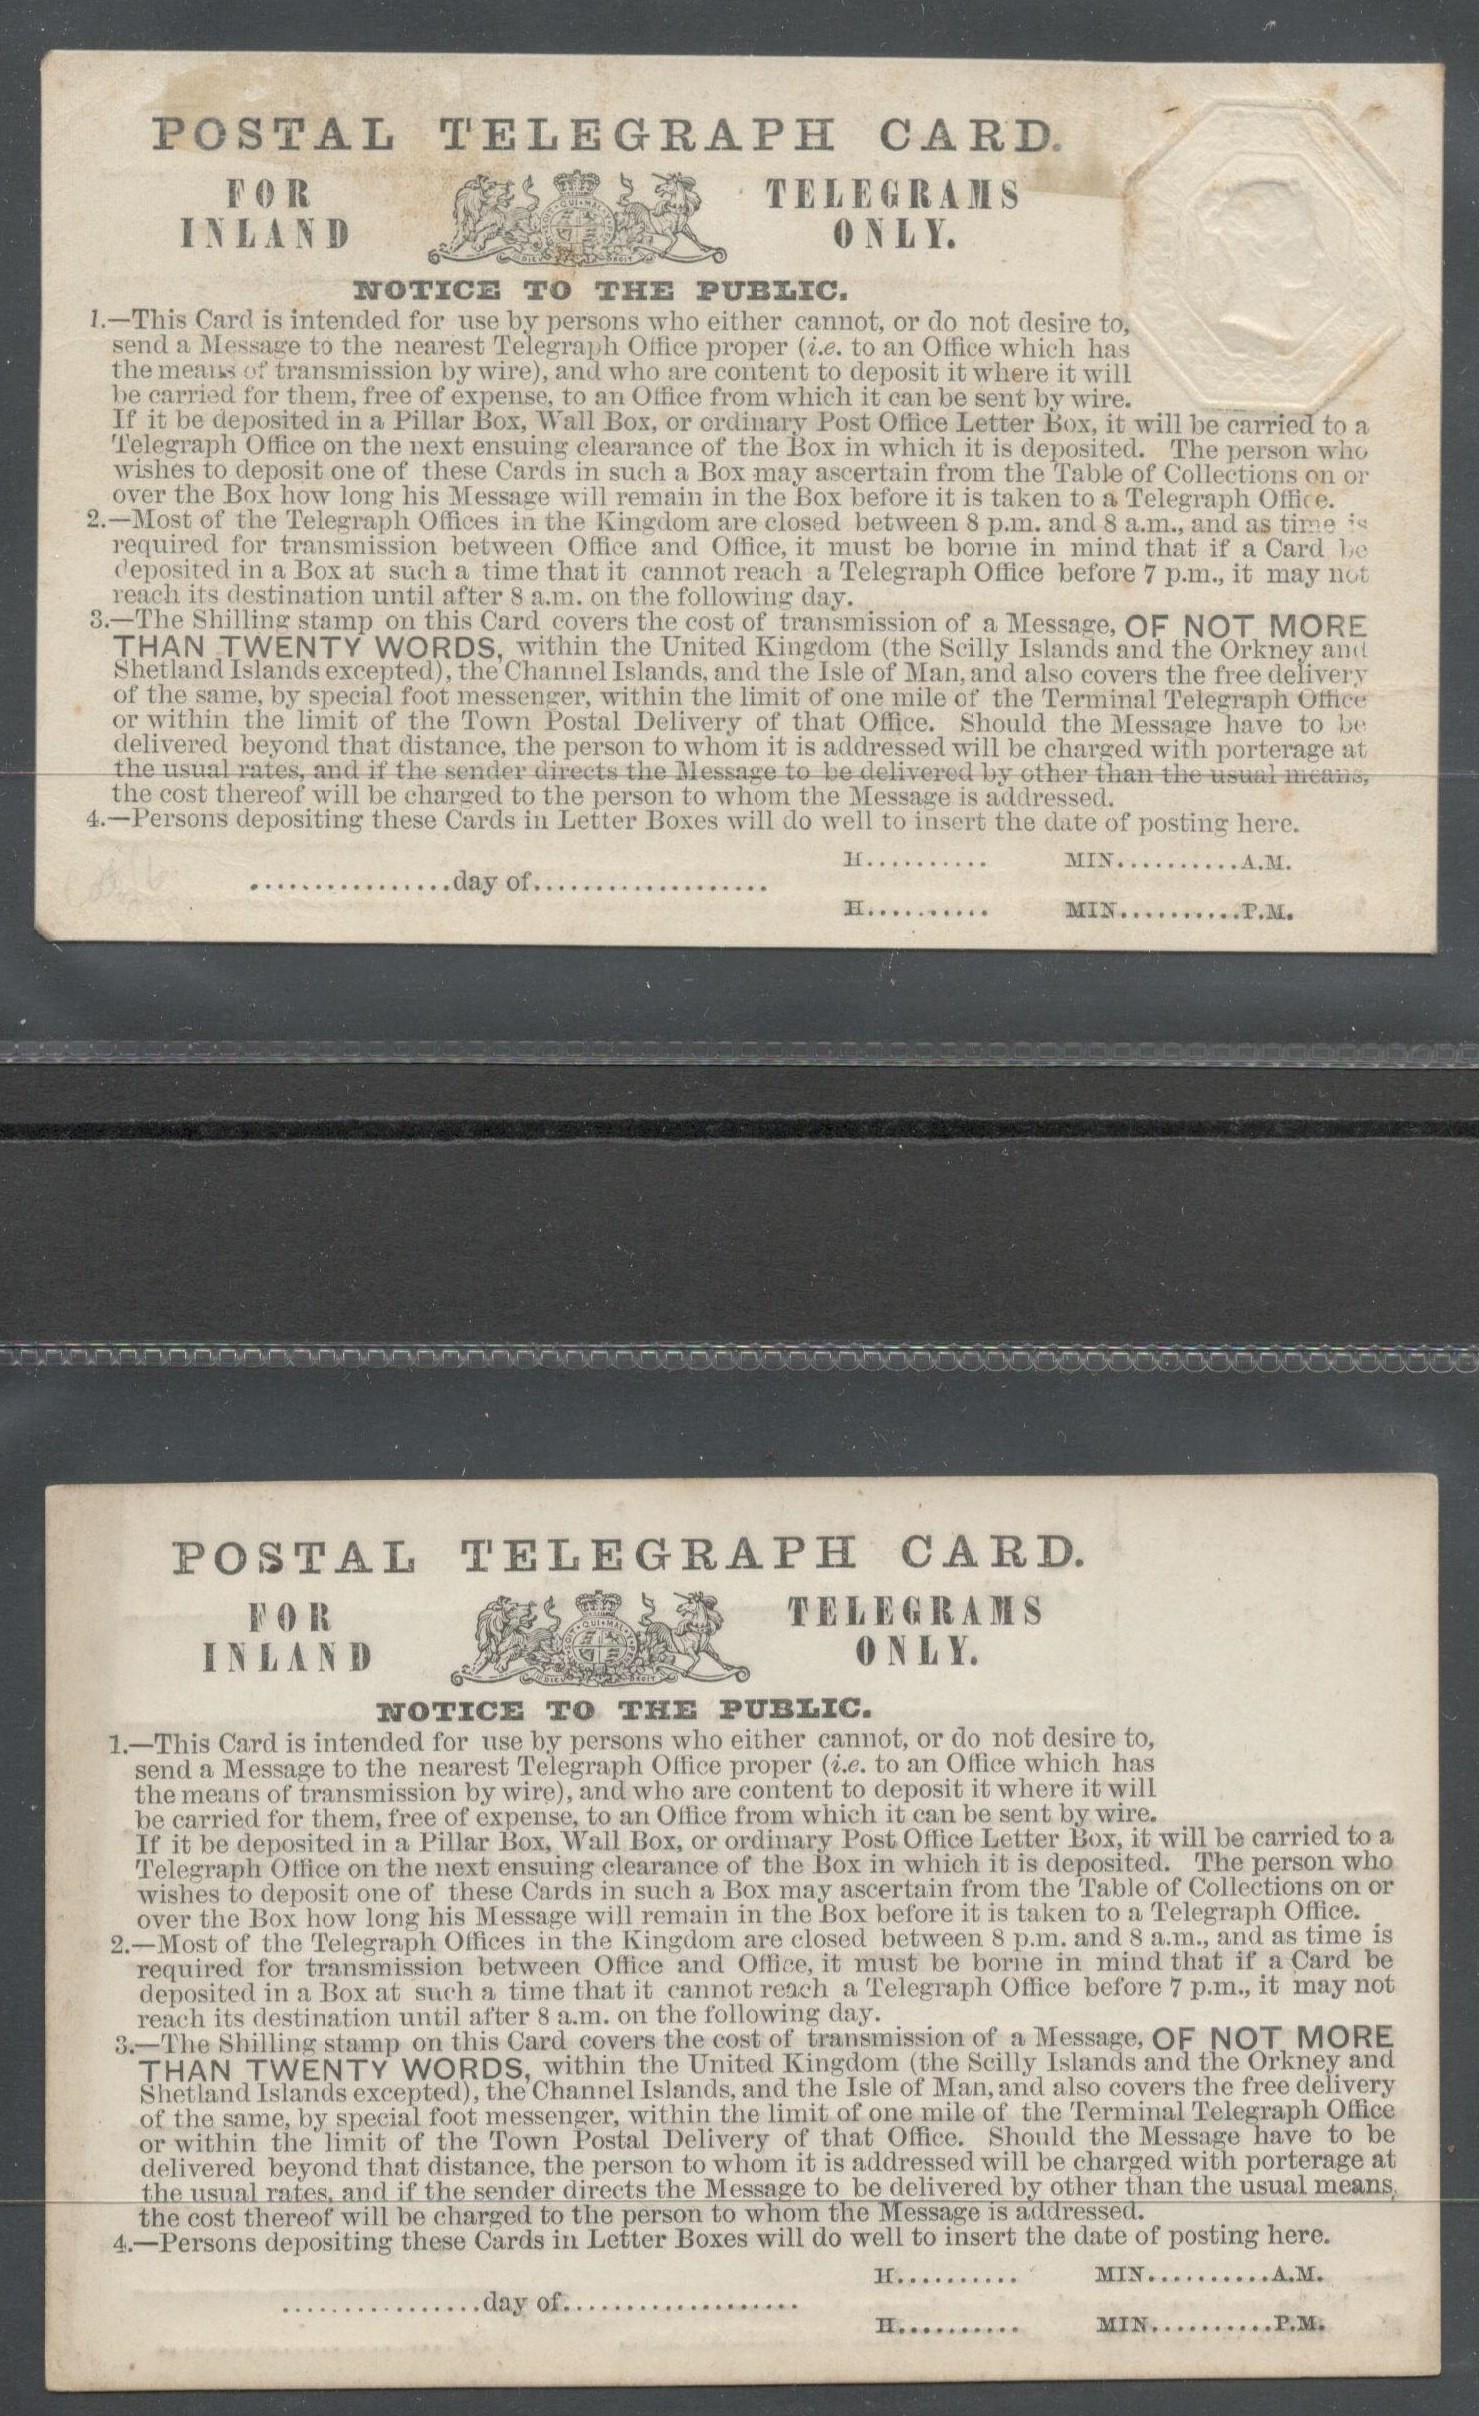 QV POSTAL TELEGRAPH CARDS (ONE WITH EMBOSSED 1 SHILLING STAMP) FOR INLAND TELEGRAMS ONLY (2) - Image 2 of 2